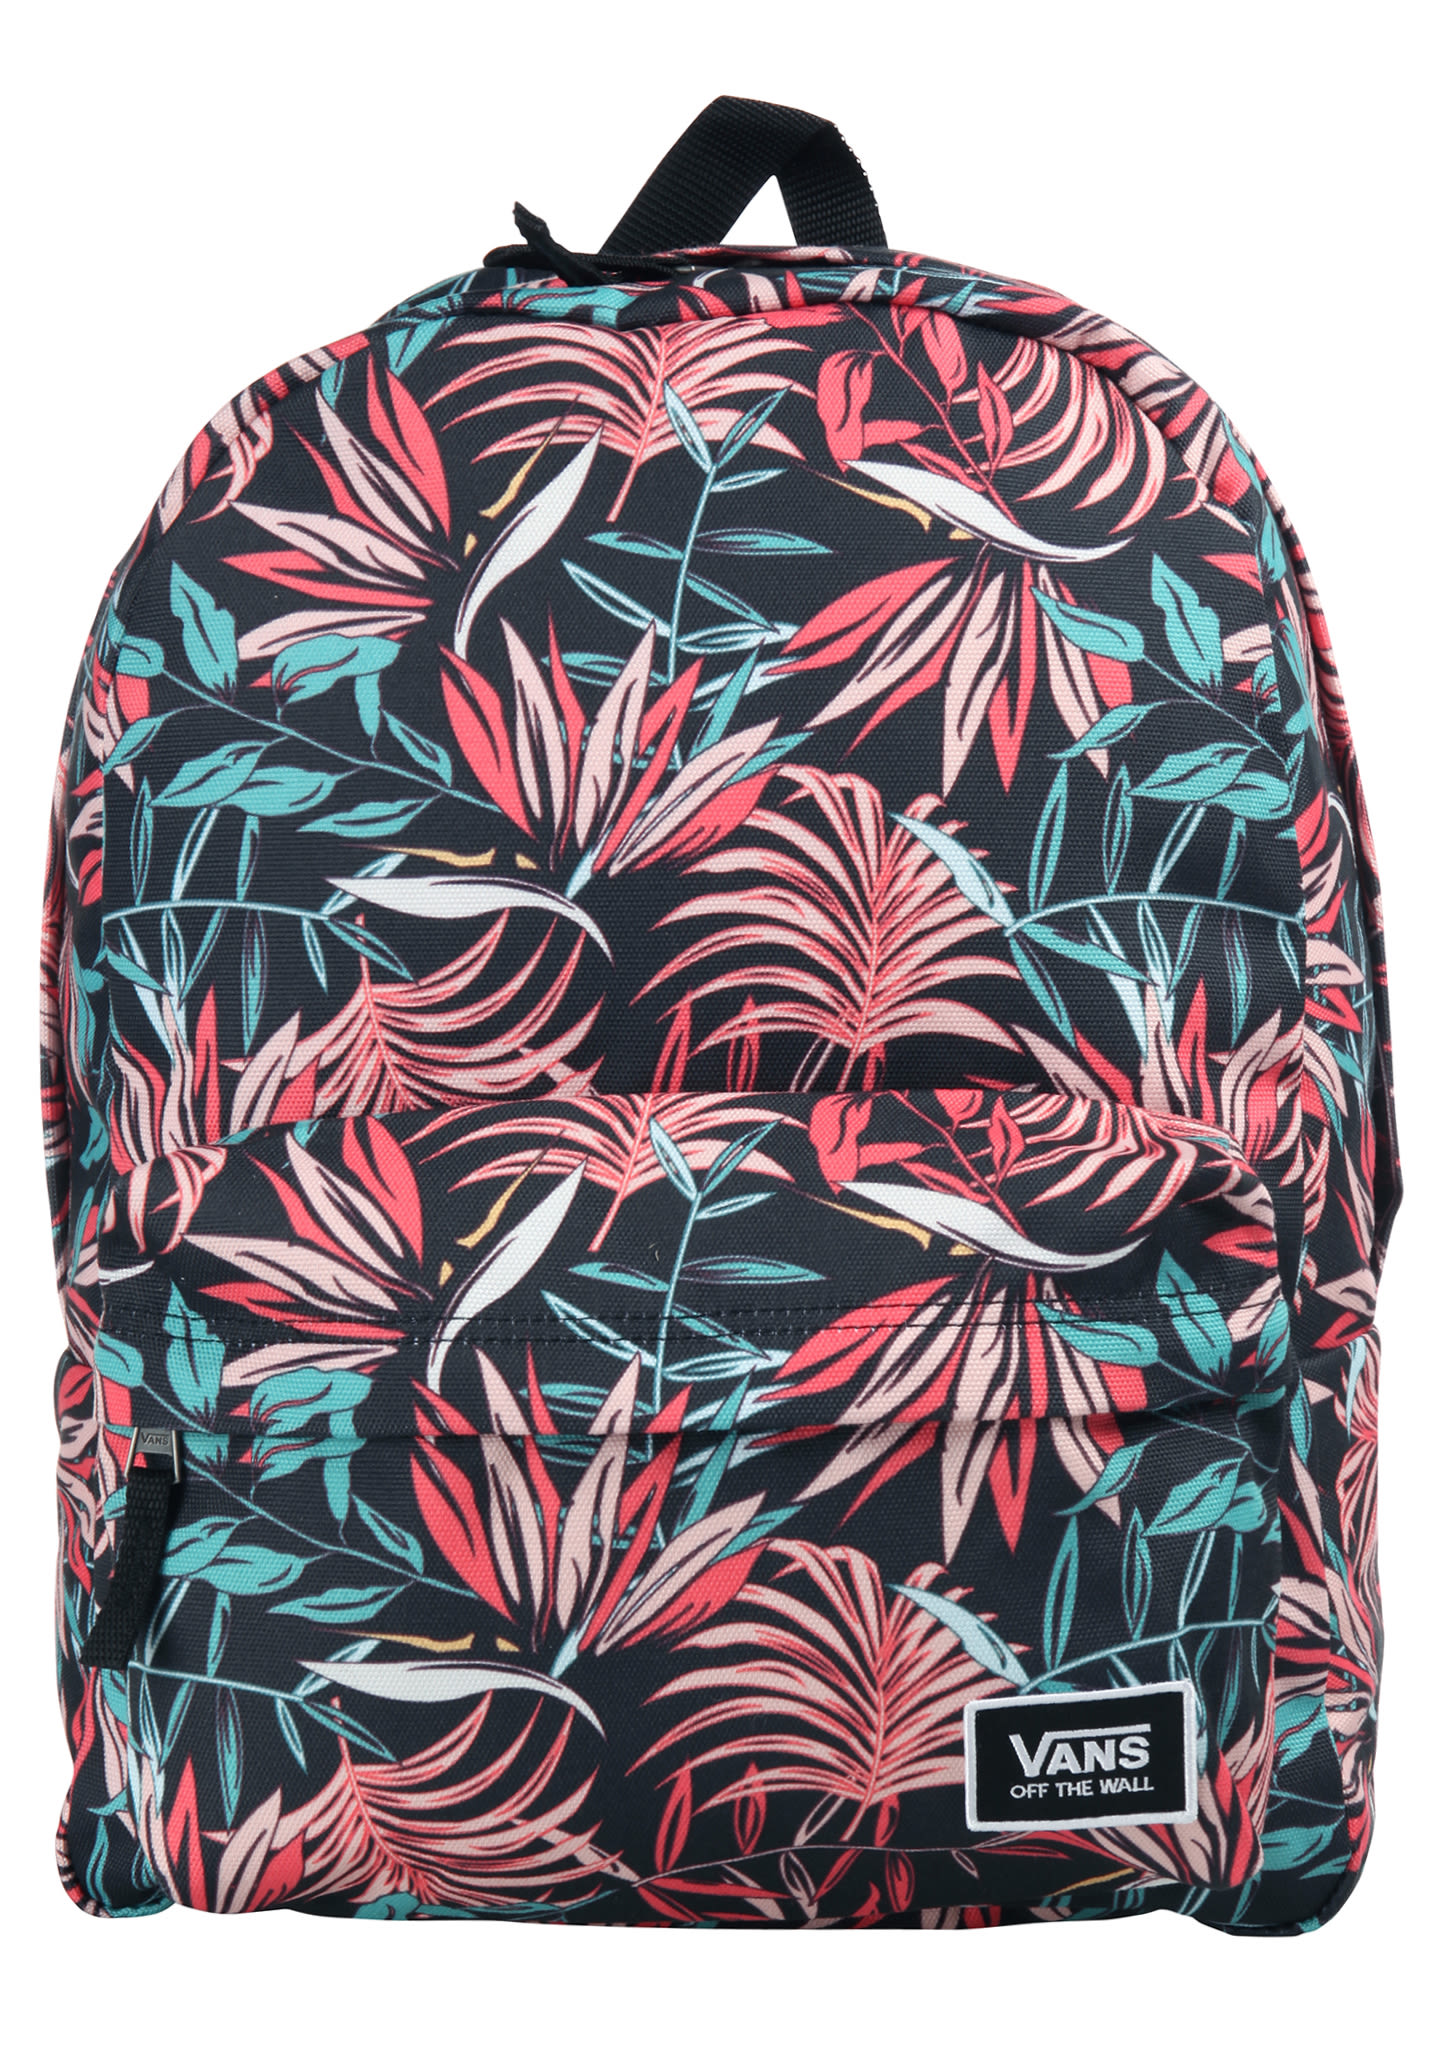 e6ae0c6a314070 Vans Realm Classic - Backpack for Women - Black - Planet Sports